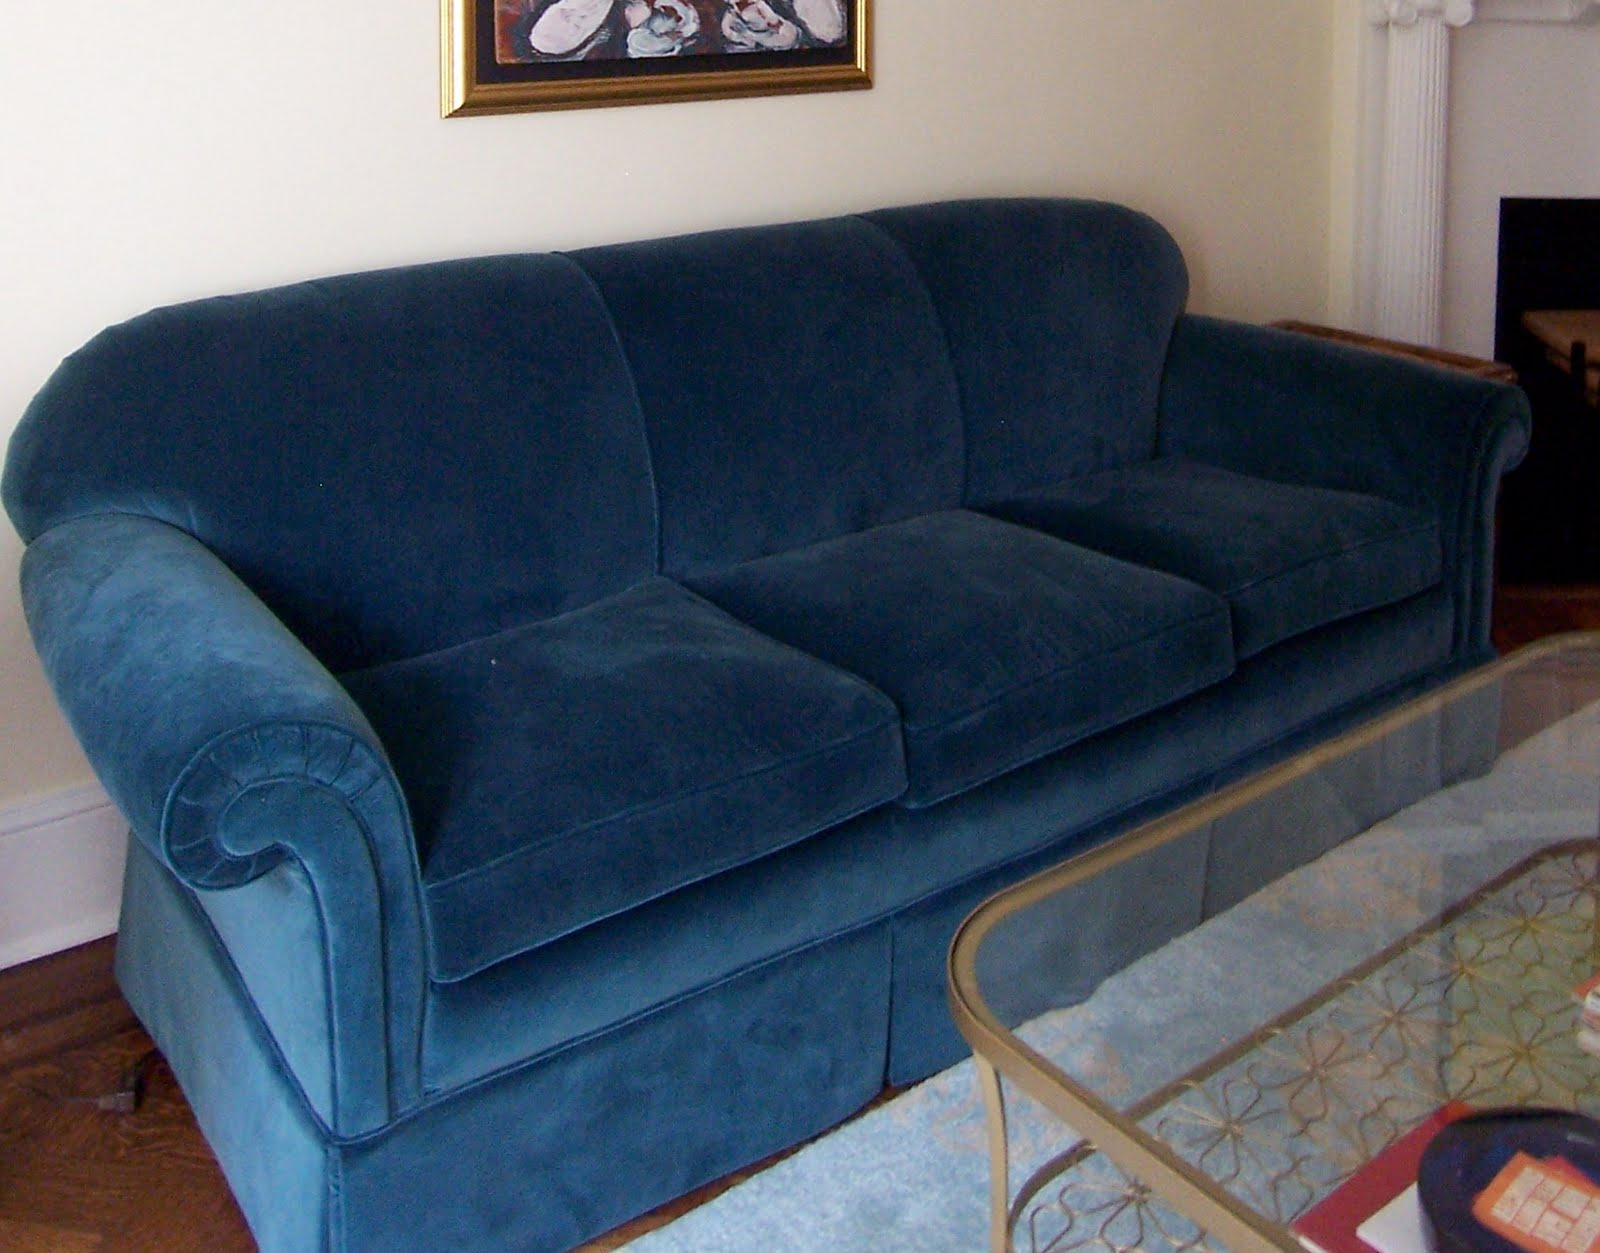 What Does It Cost To Reupholster A Sofa Sofa Furniture 22 Striking Reupholster Cost Image Ideas